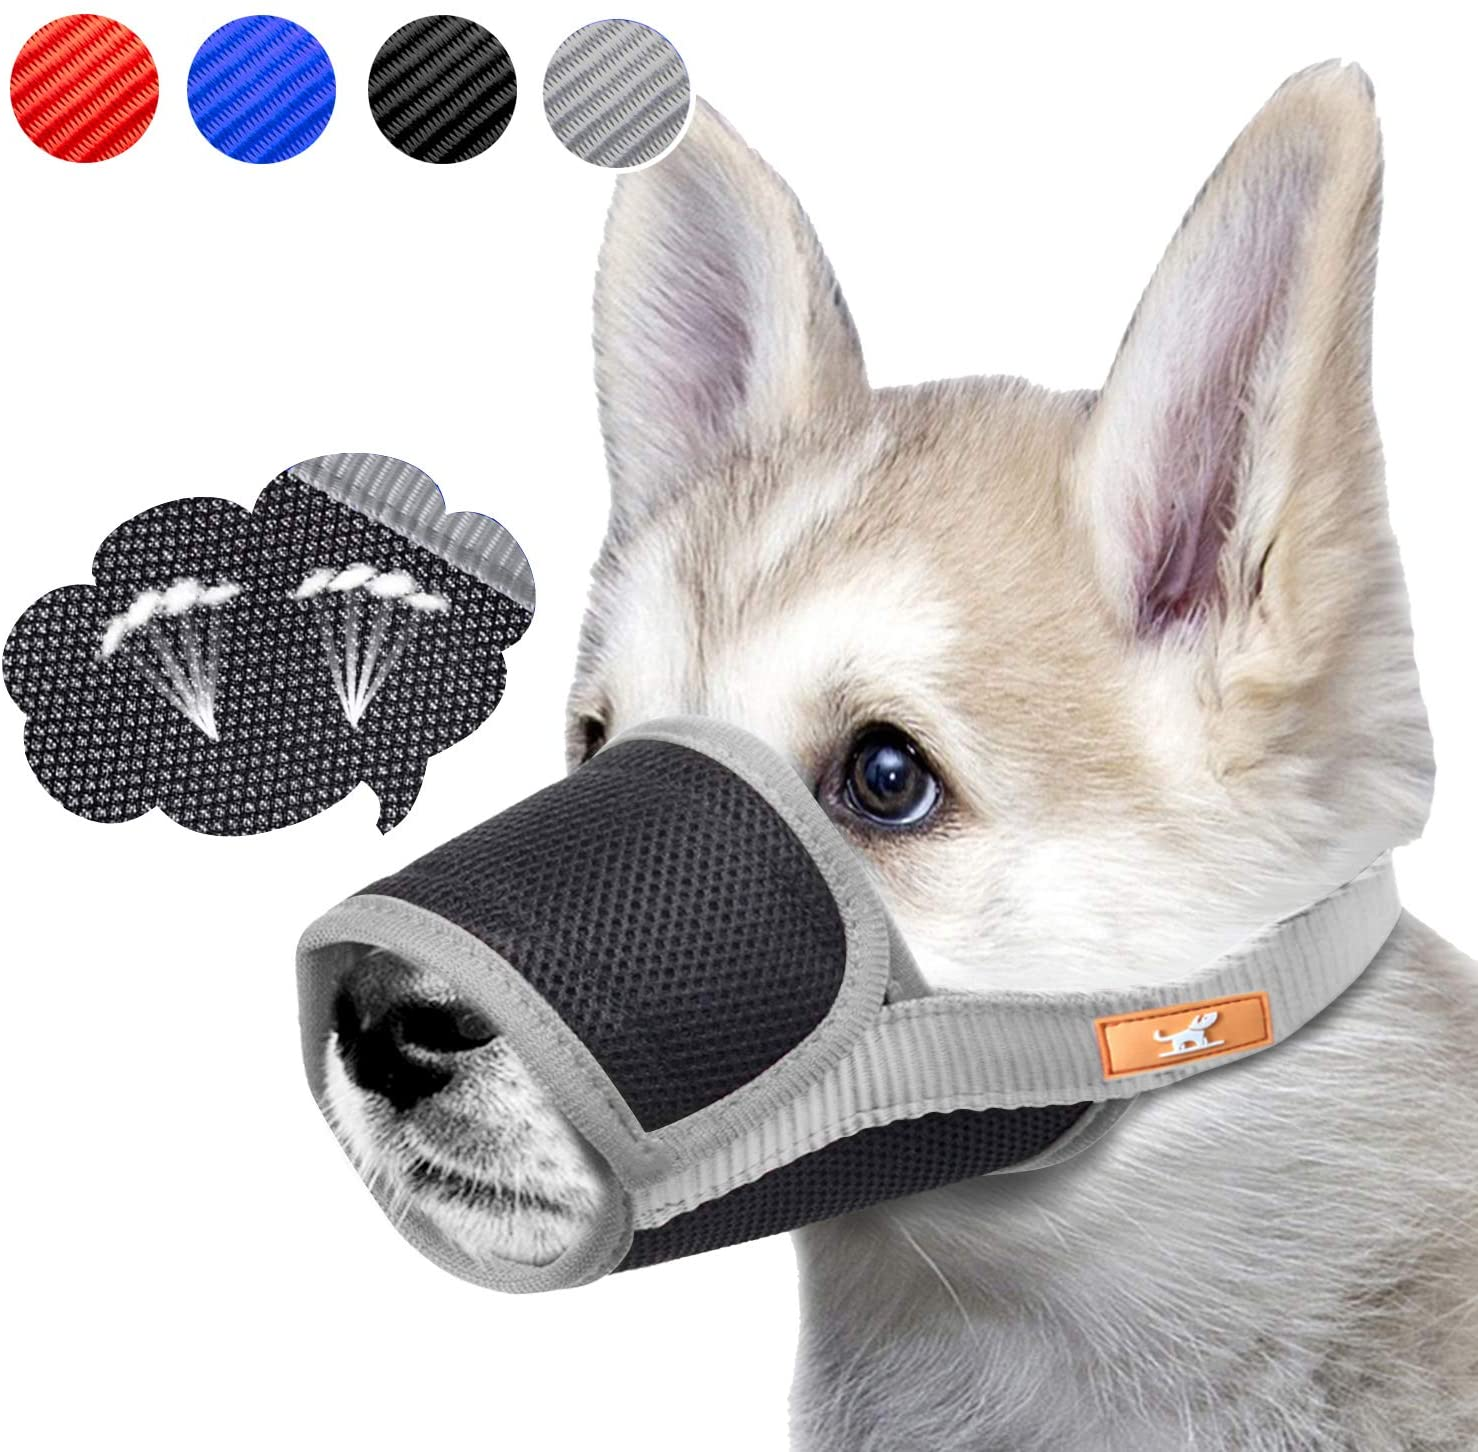 Dog Muzzle Breathable Mesh Mask Stop Biting, Barking and Chewing, Cover with Hook & Loop for Dogs, Adjustable